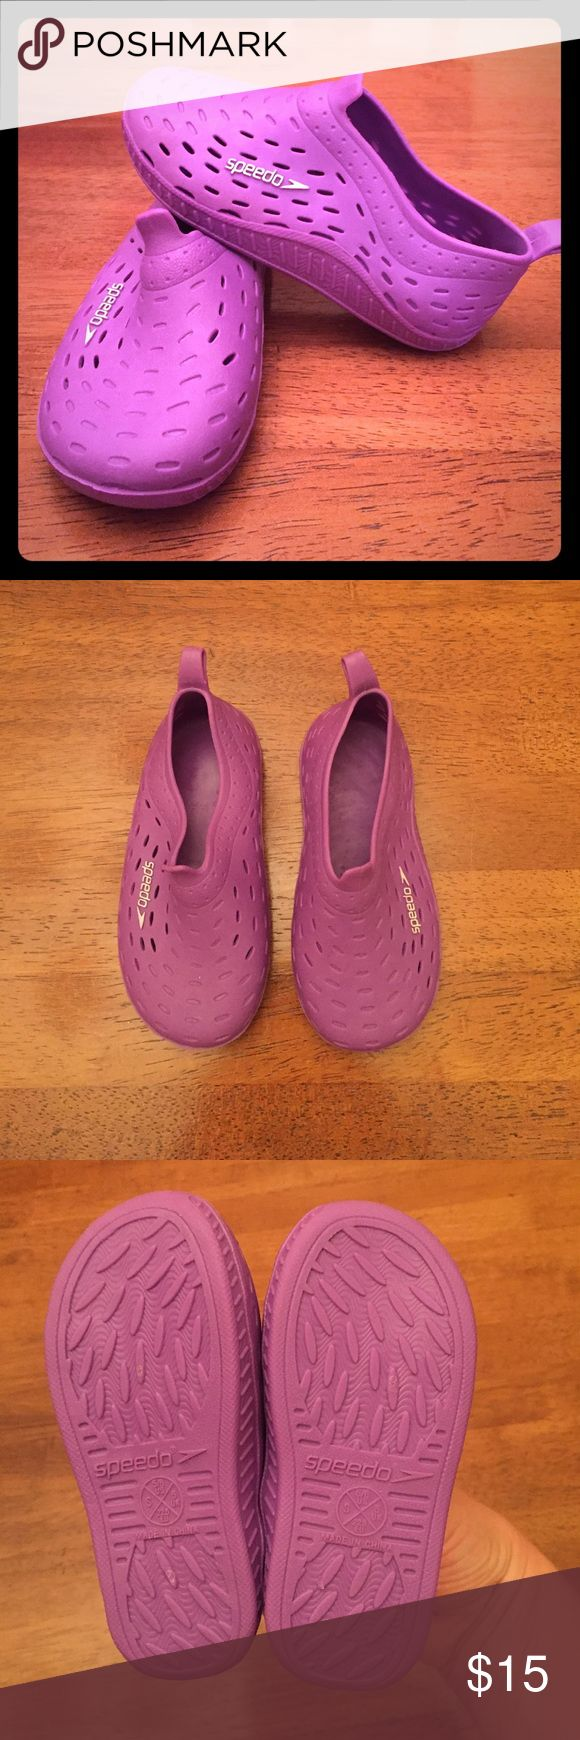 NWOT Speedo girl's water shoes in PURPLE! SPEEDO water shoes in purple. Never worn! Too big for my little when we bought them this summer. No tags, but in perfect condition! White emblem with breathable rubber and back pulls so they slide on easily. size SMALL 5/6. Speedo Shoes Water Shoes